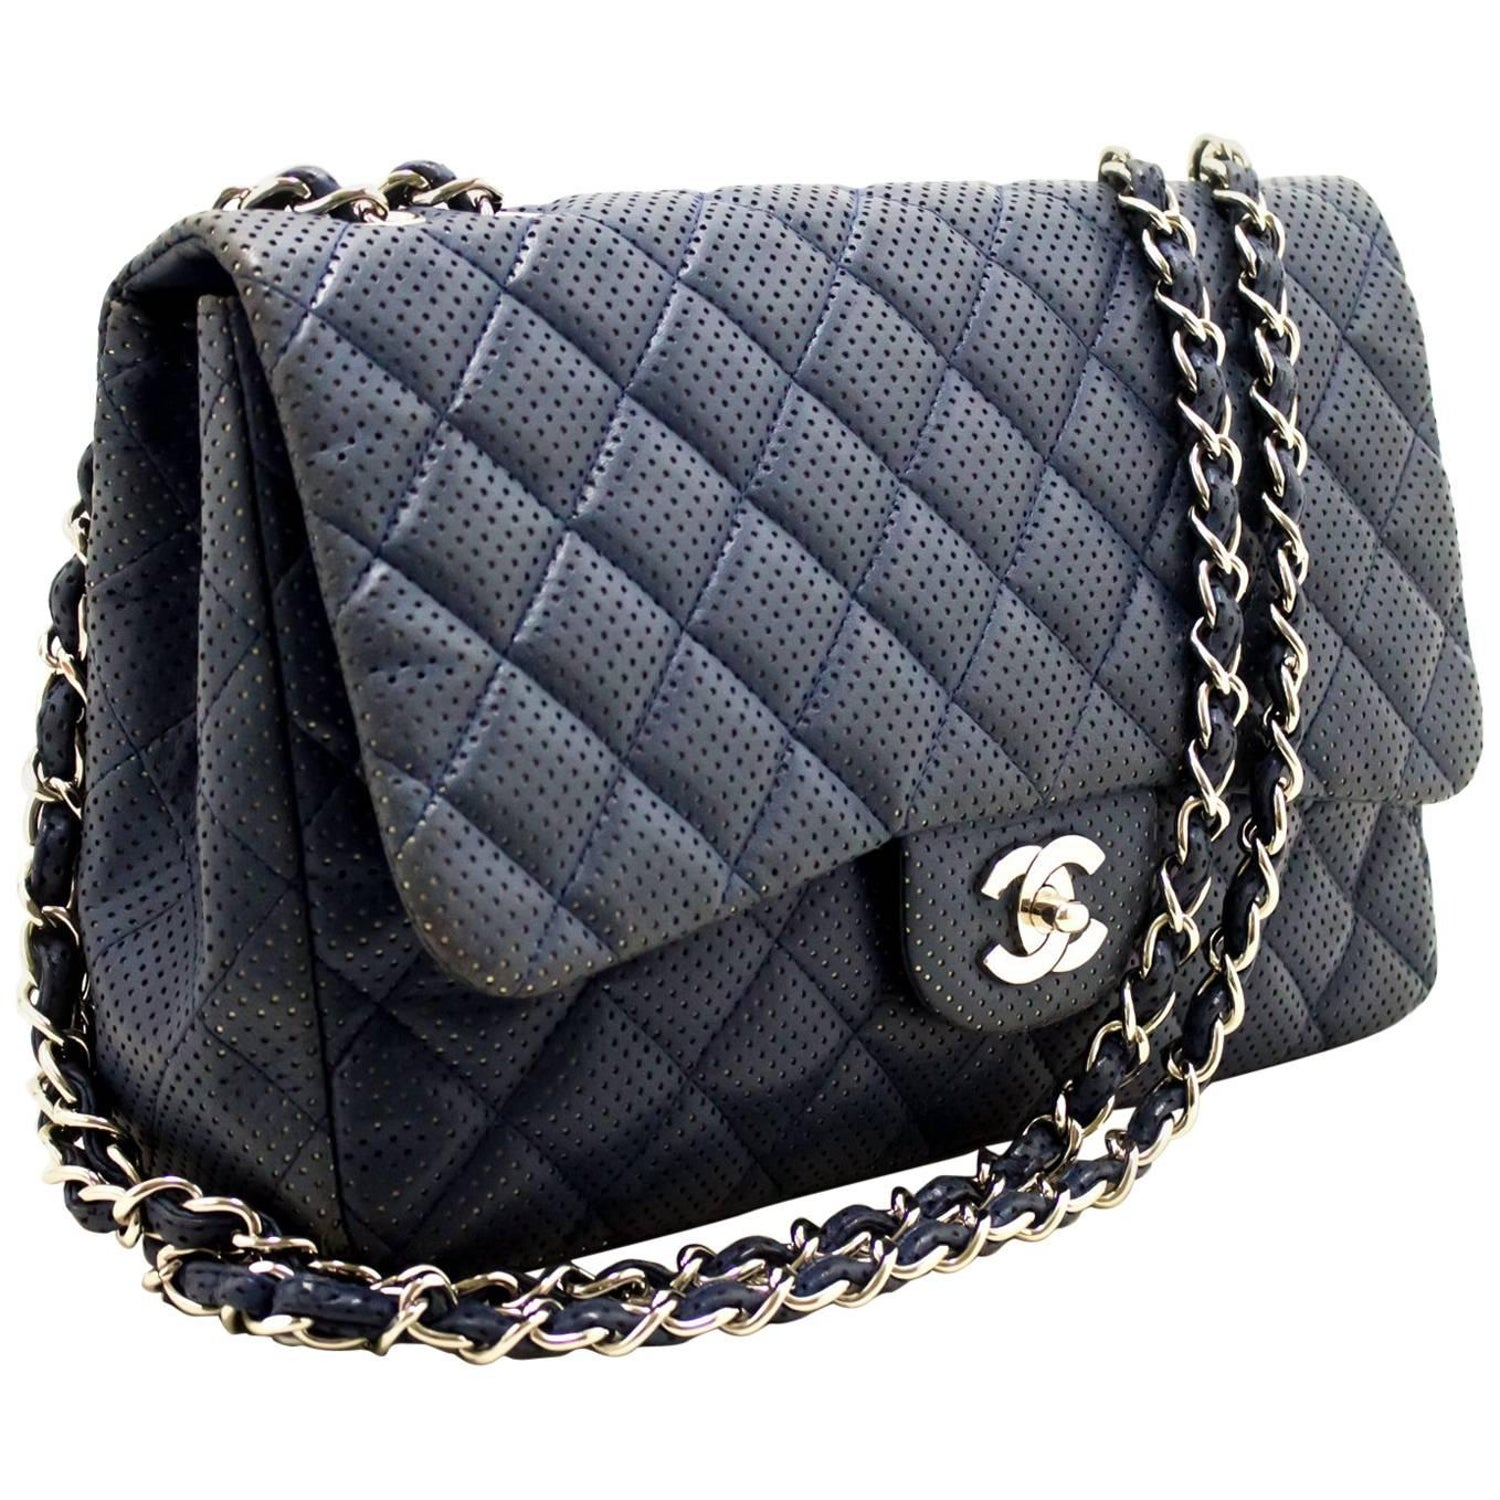 1faba78d9c5a CHANEL Navy Punching Leather Chain Shoulder Bag Quilted Flap SV at 1stdibs